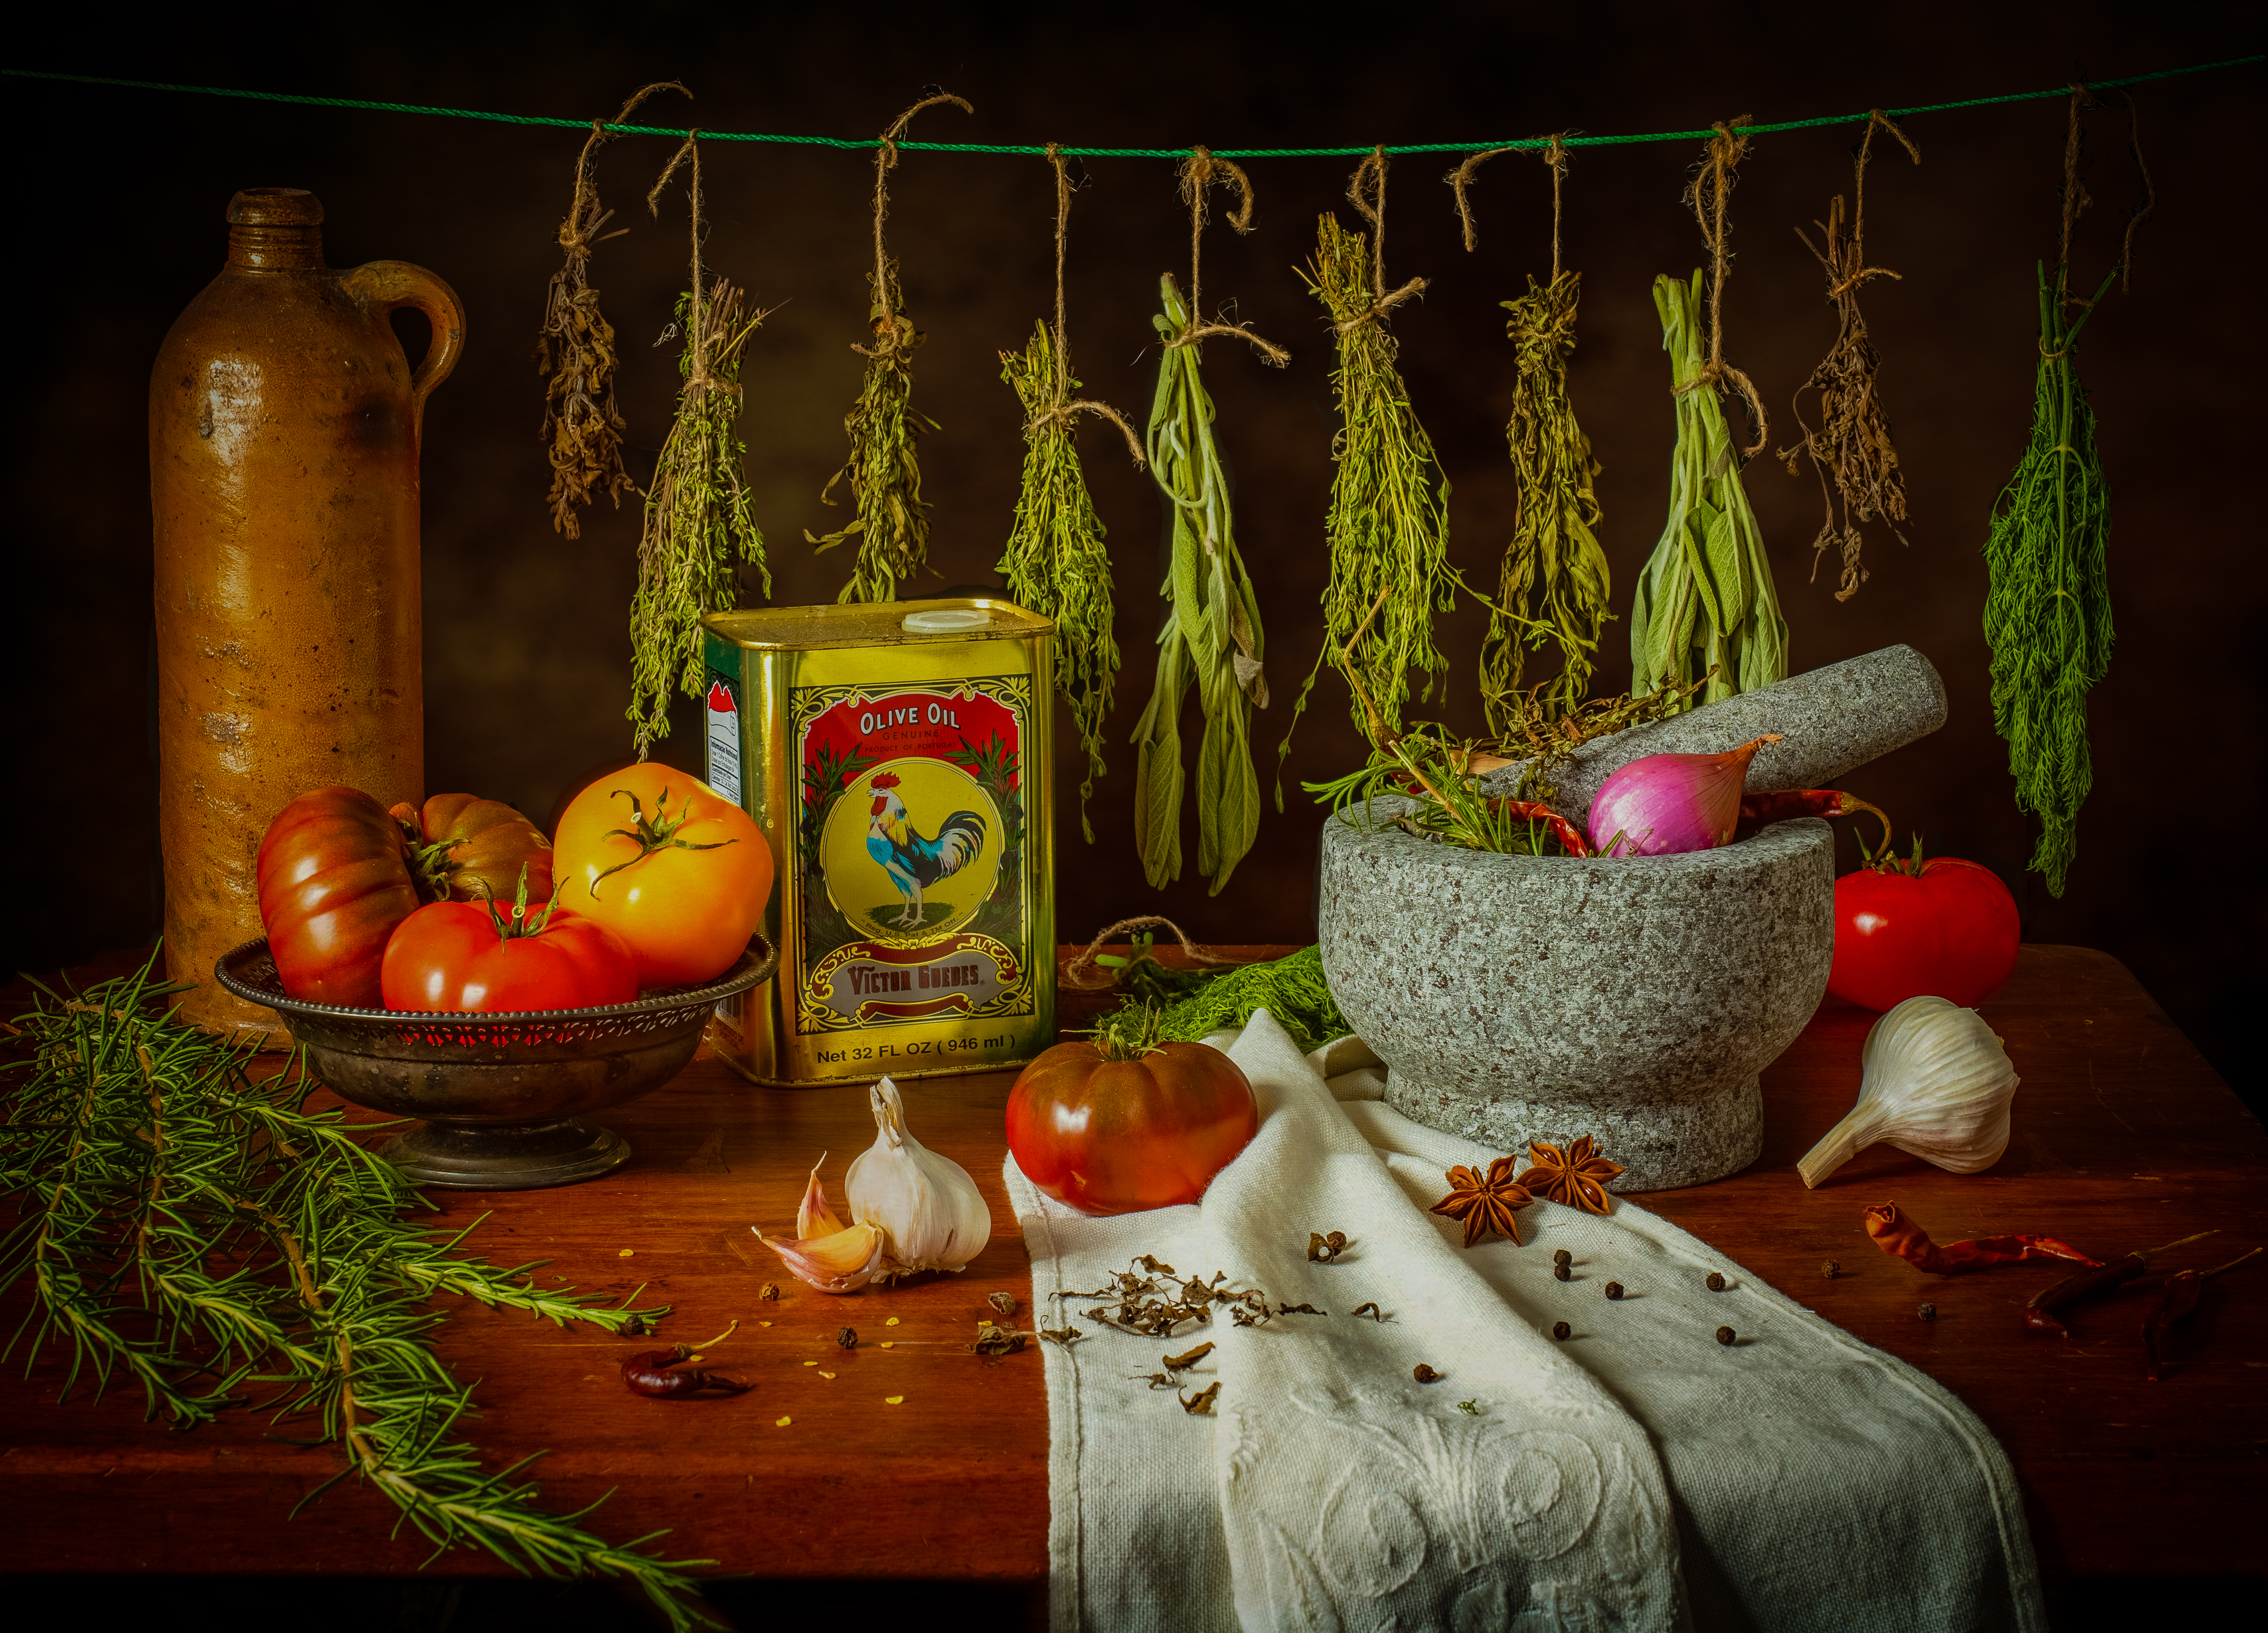 a scene of dried herbs, heirloom tomatoes, onion, garlic, and olive oil with a mortar and pestle